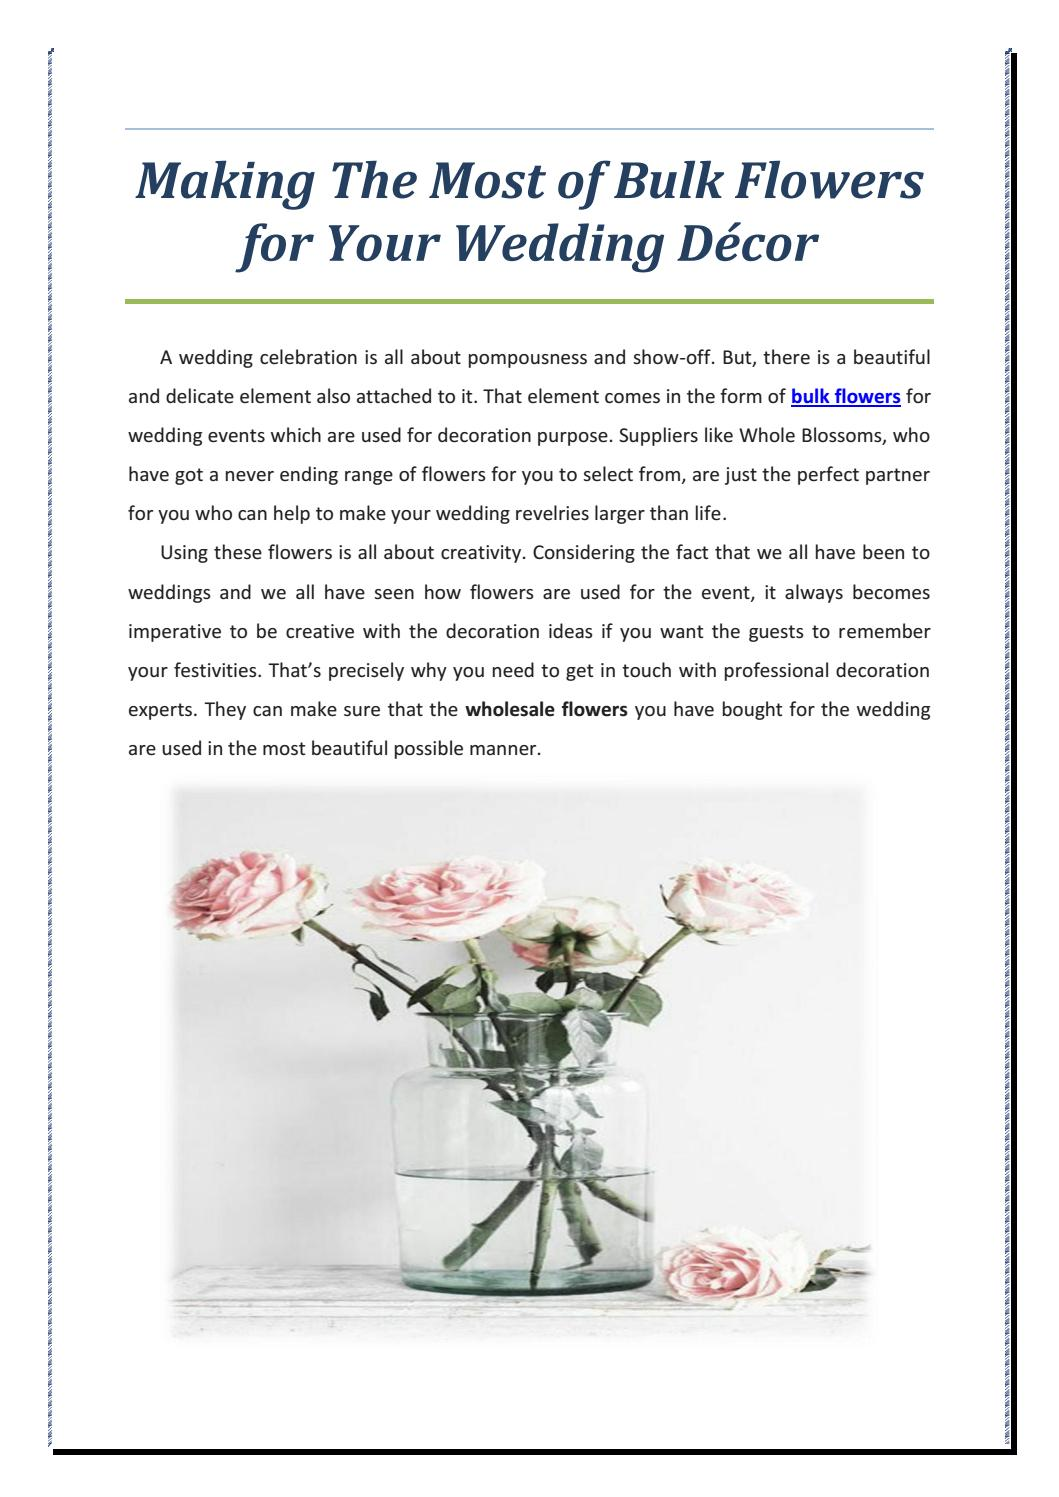 Making the most of bulk flowers for your wedding dcor by www making the most of bulk flowers for your wedding dcor by wholeblossoms issuu izmirmasajfo